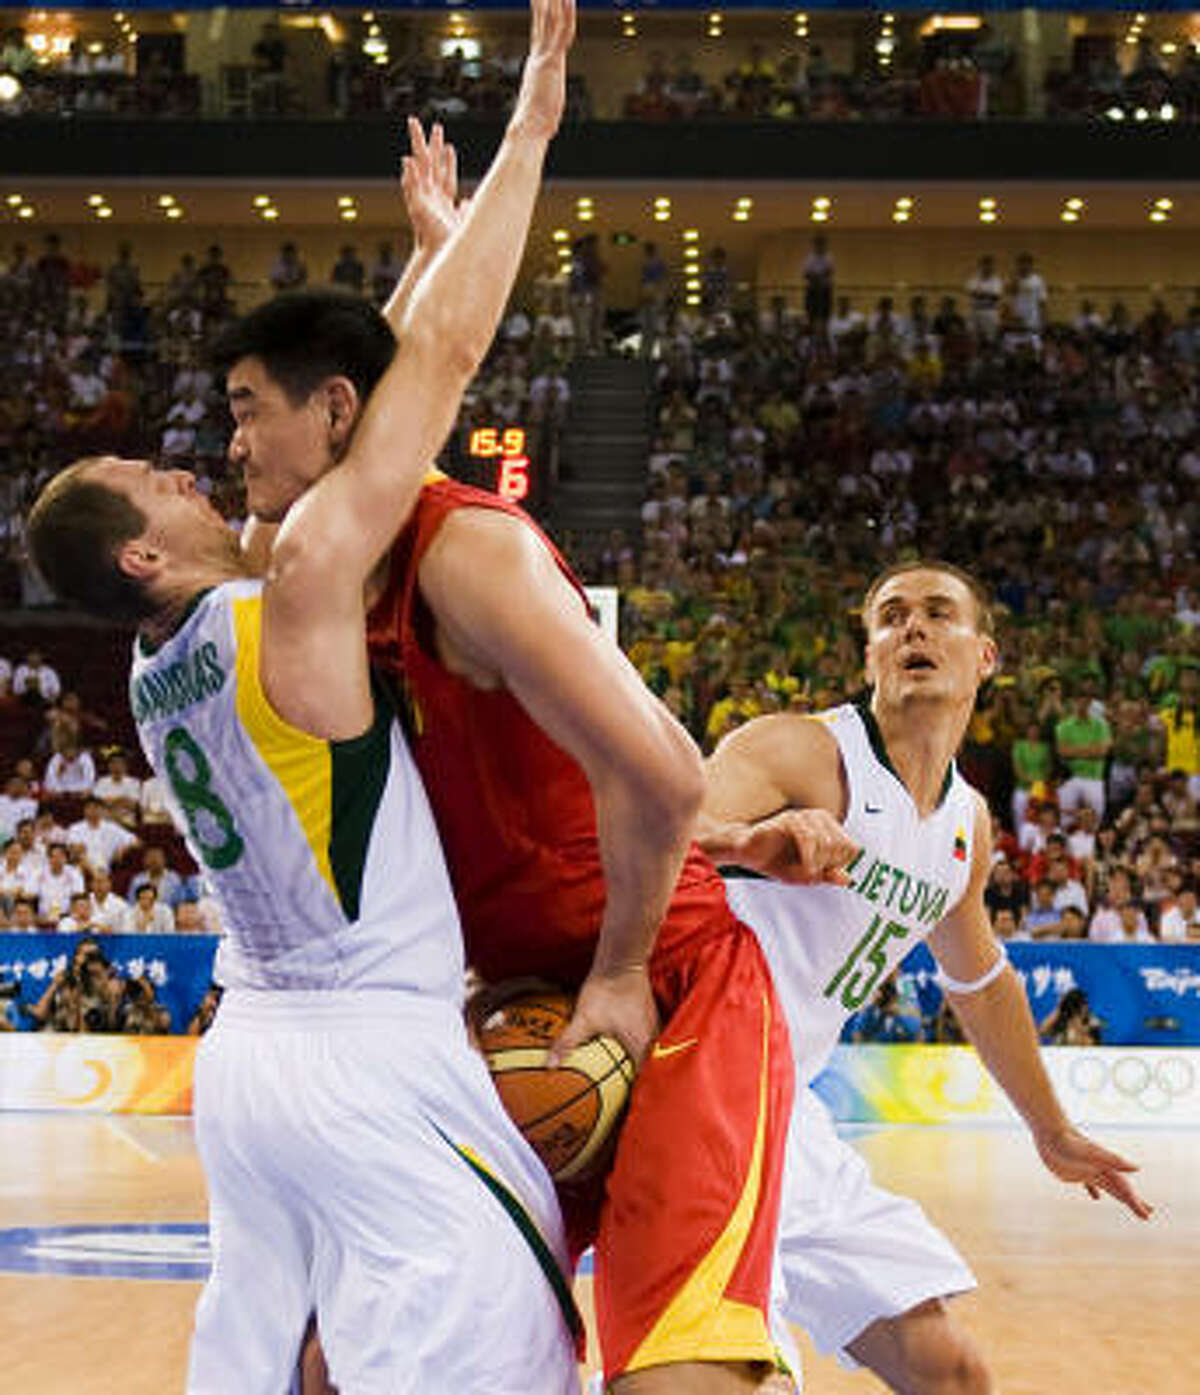 Yao Ming had 19 points in what could be his last game at the Olympics.